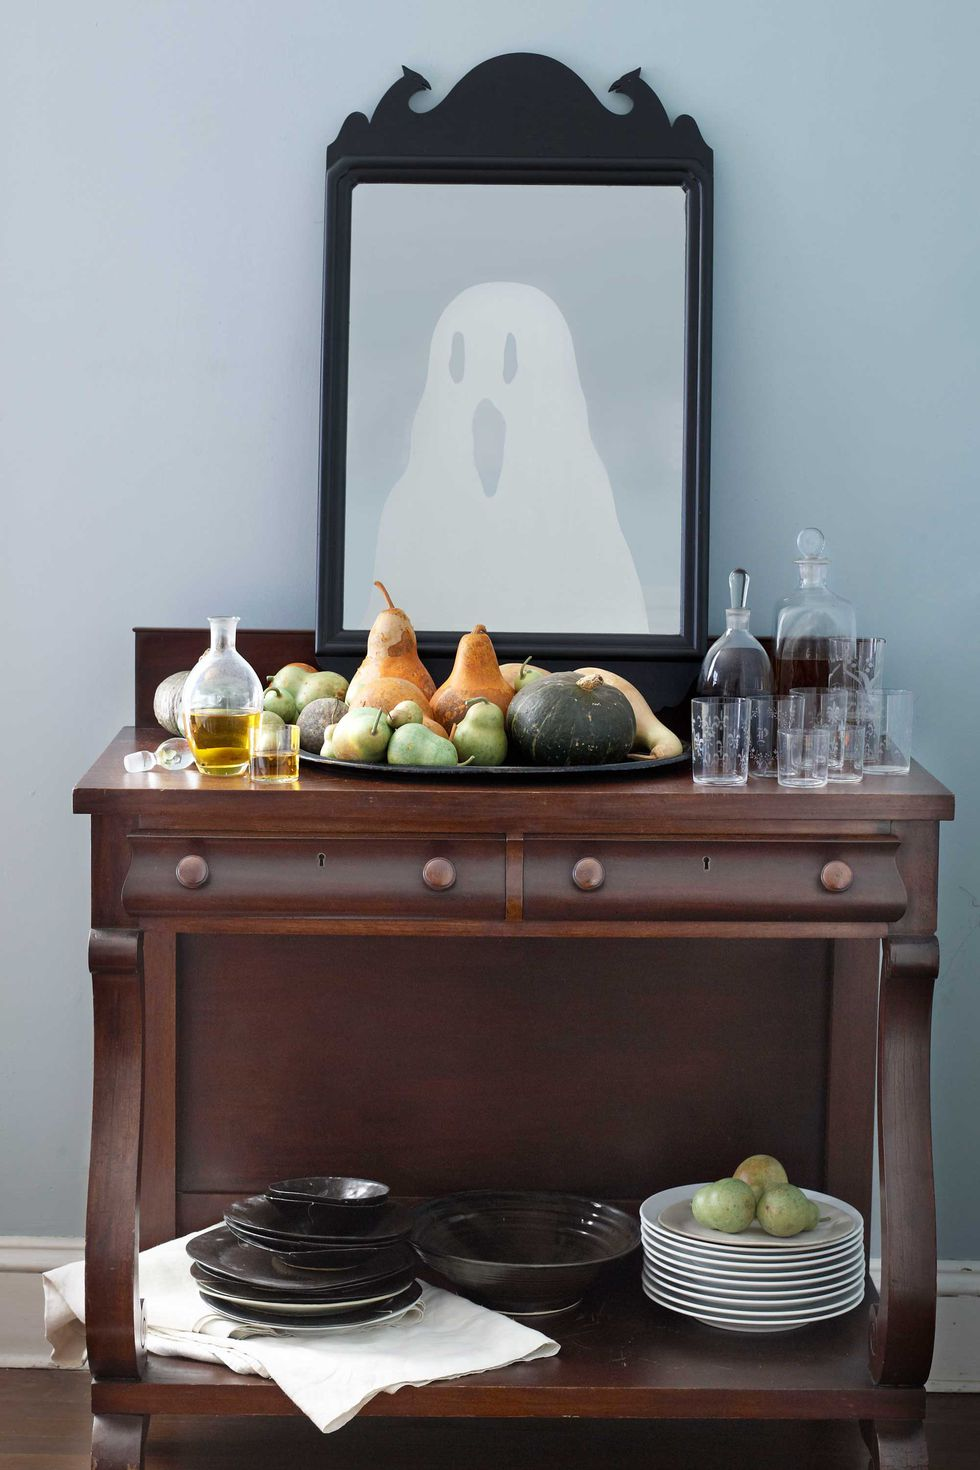 Ghostly Mirror: These 30 DIY Halloween Decorations That Are Wickedly Creative will save you money and allow your creativity to flourish